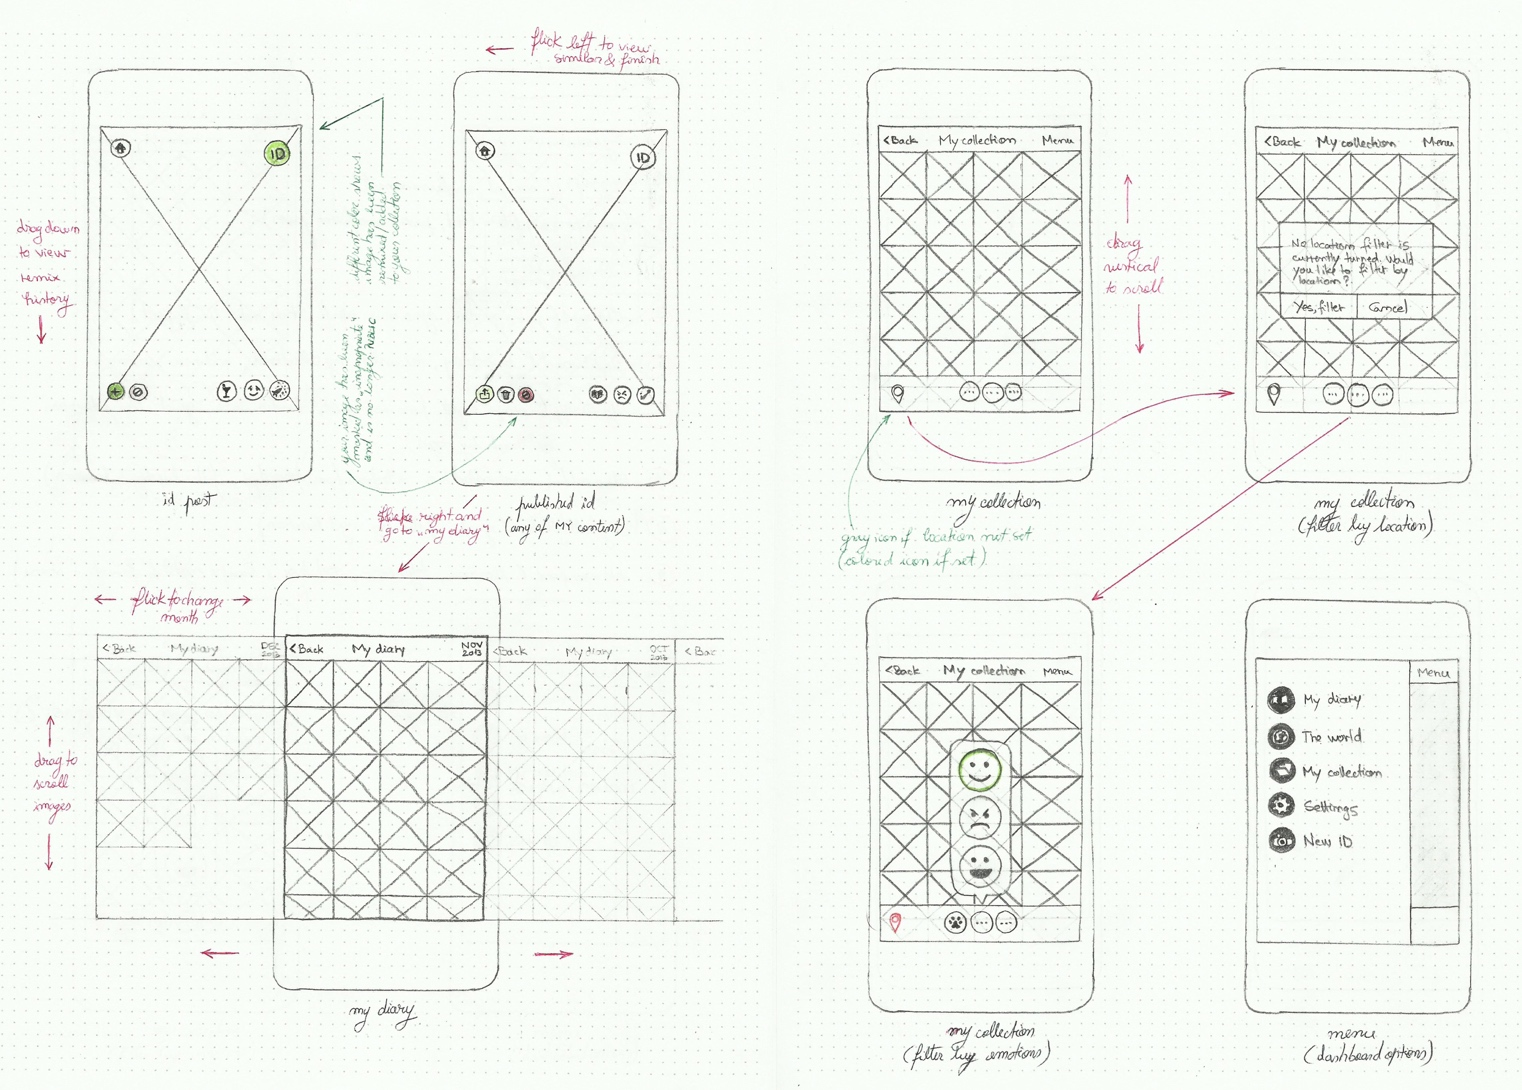 Early mock sketches of Sideview app